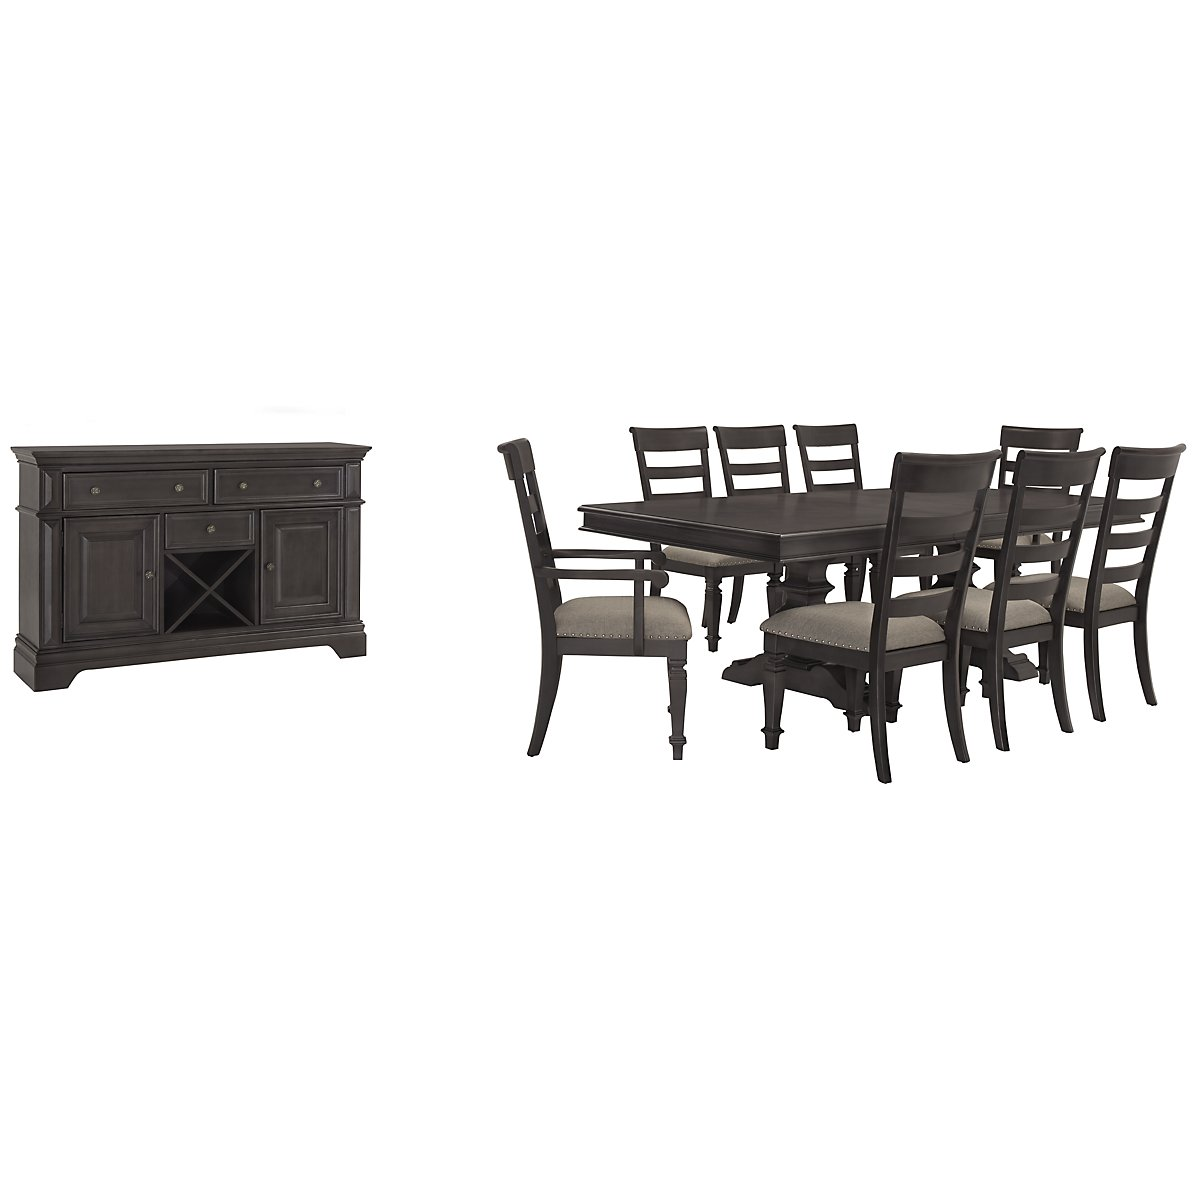 Emerson Gray Wood Trestle Dining Room